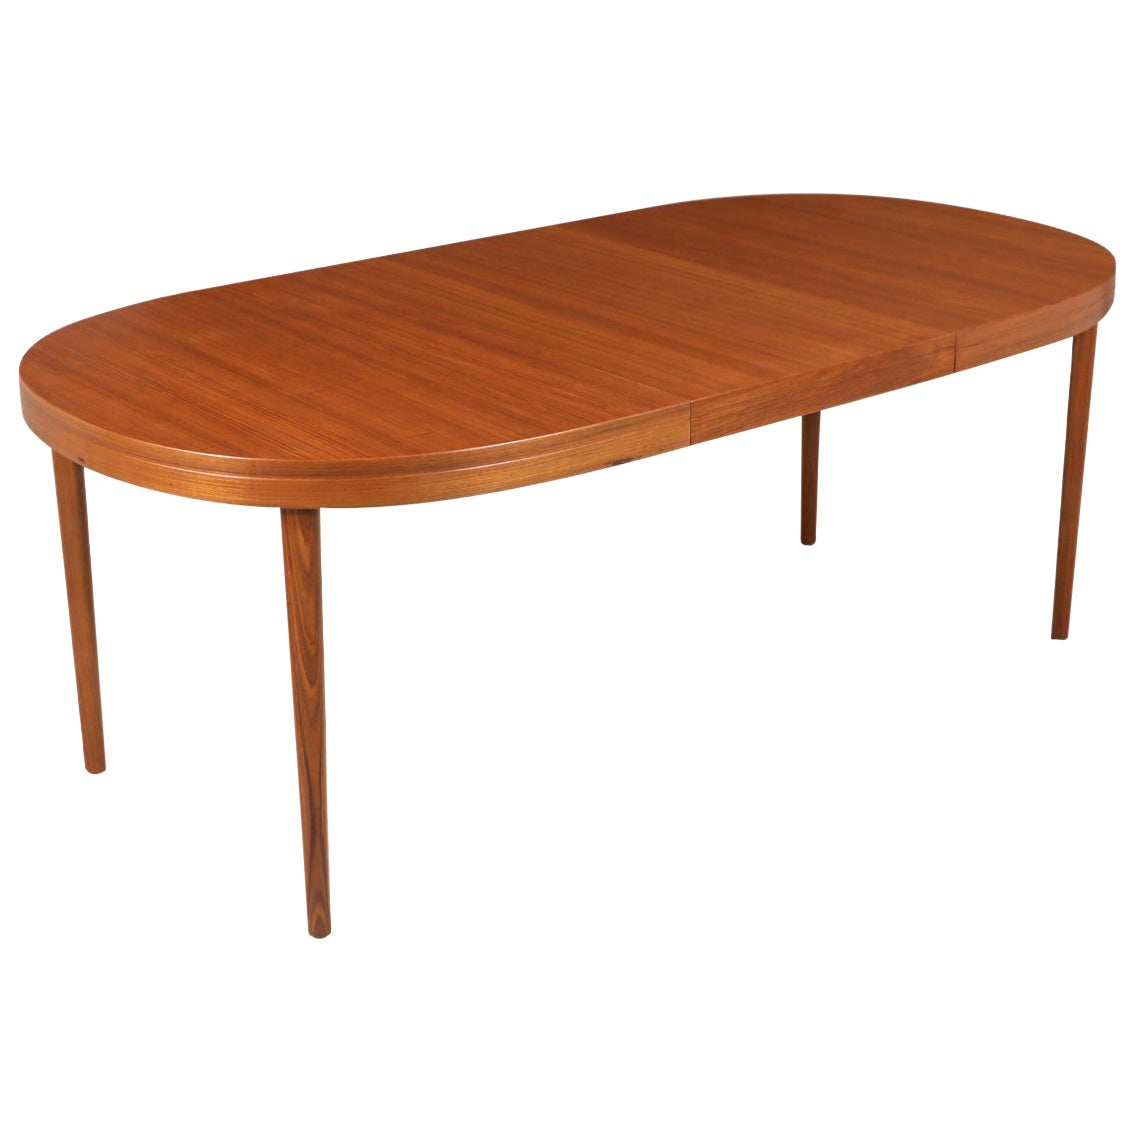 Danish Modern Expanding Oval Teak Dining Table